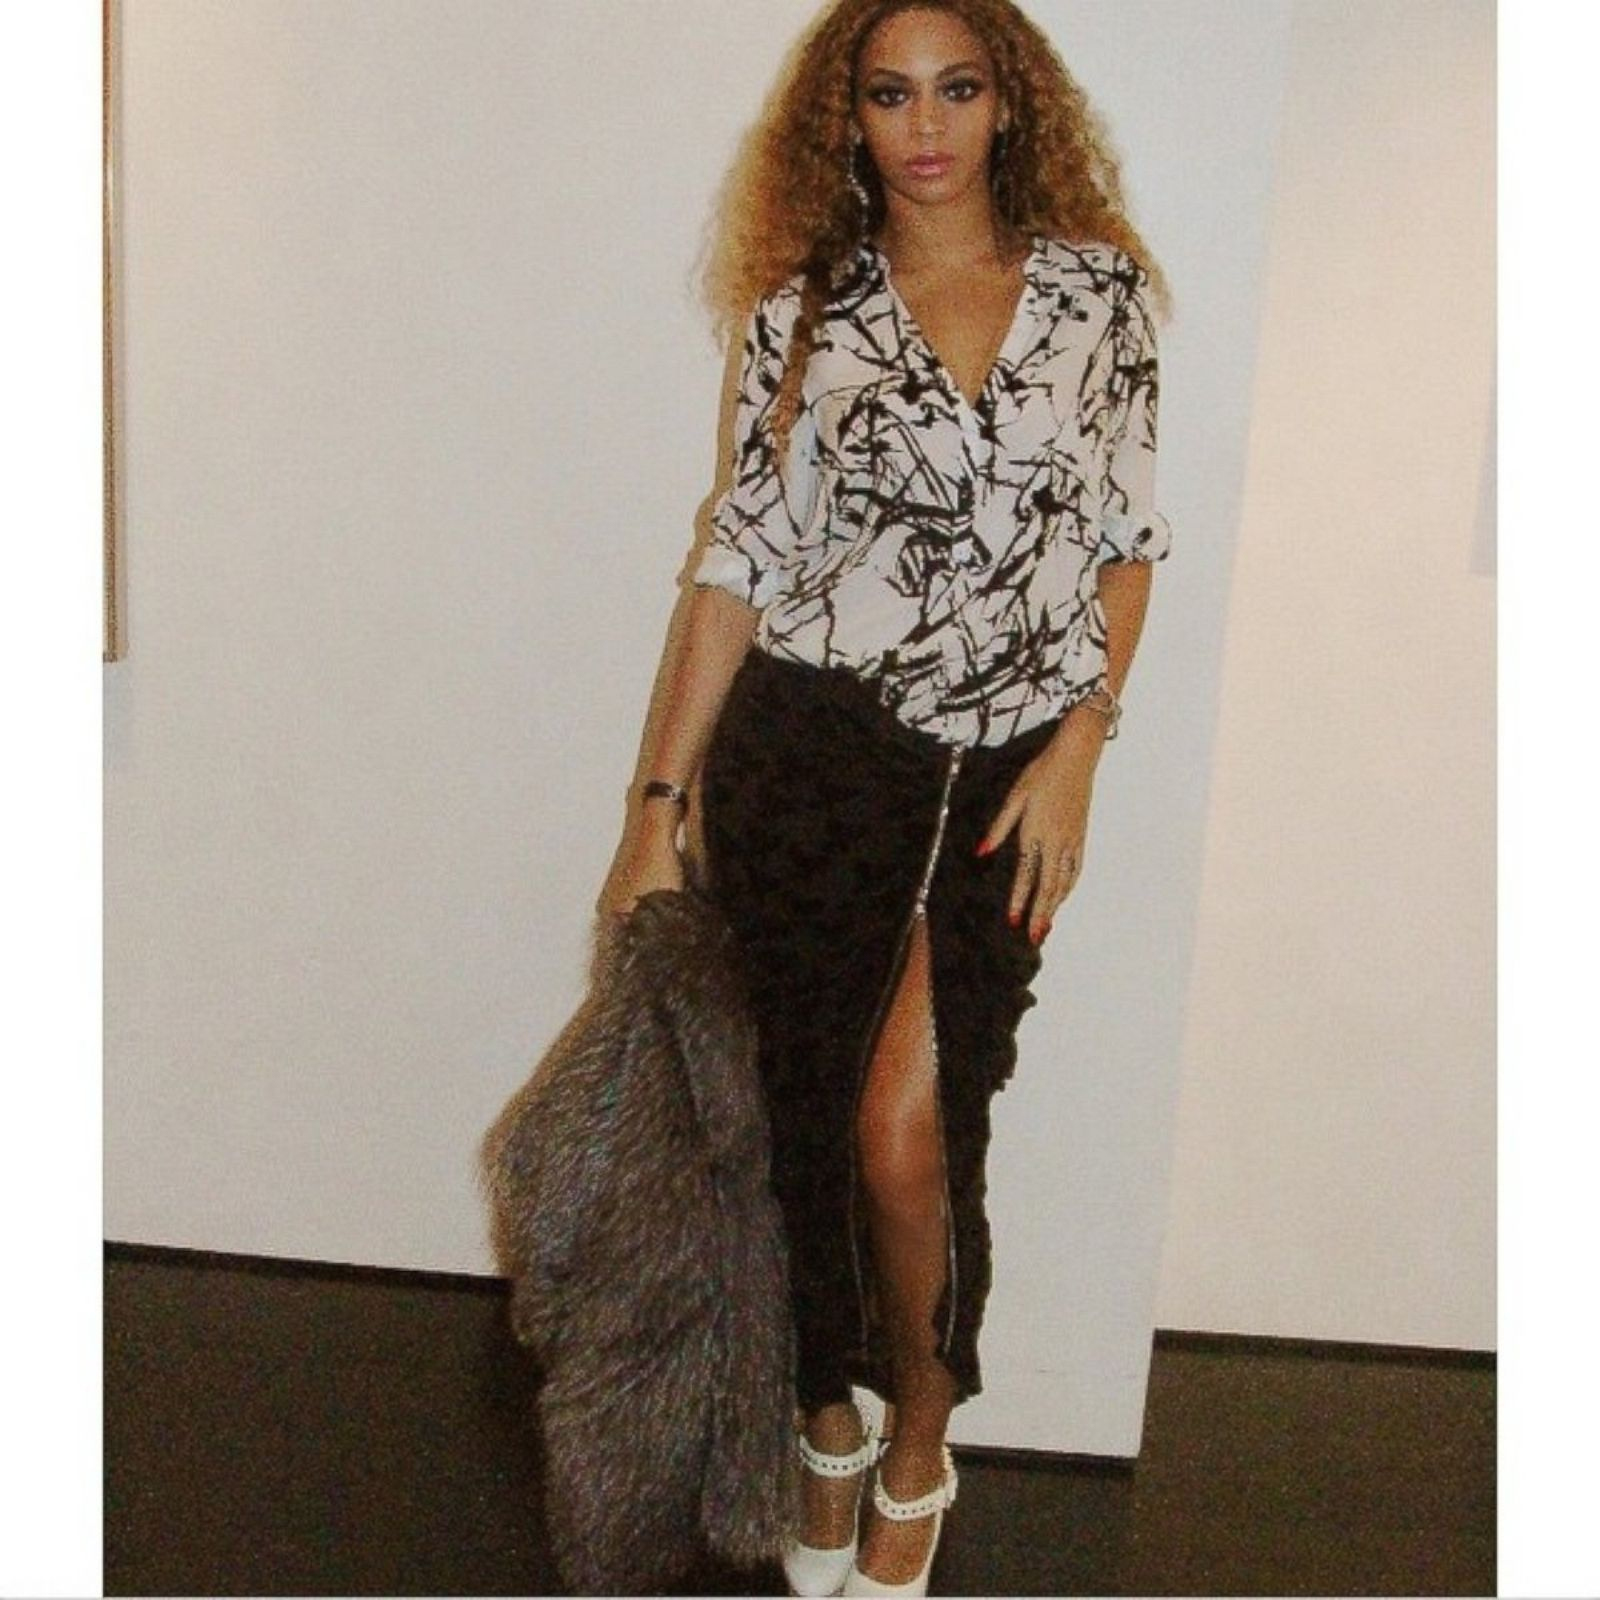 Beyonce Rocks A Skirt With A Seriously High Slit Picture